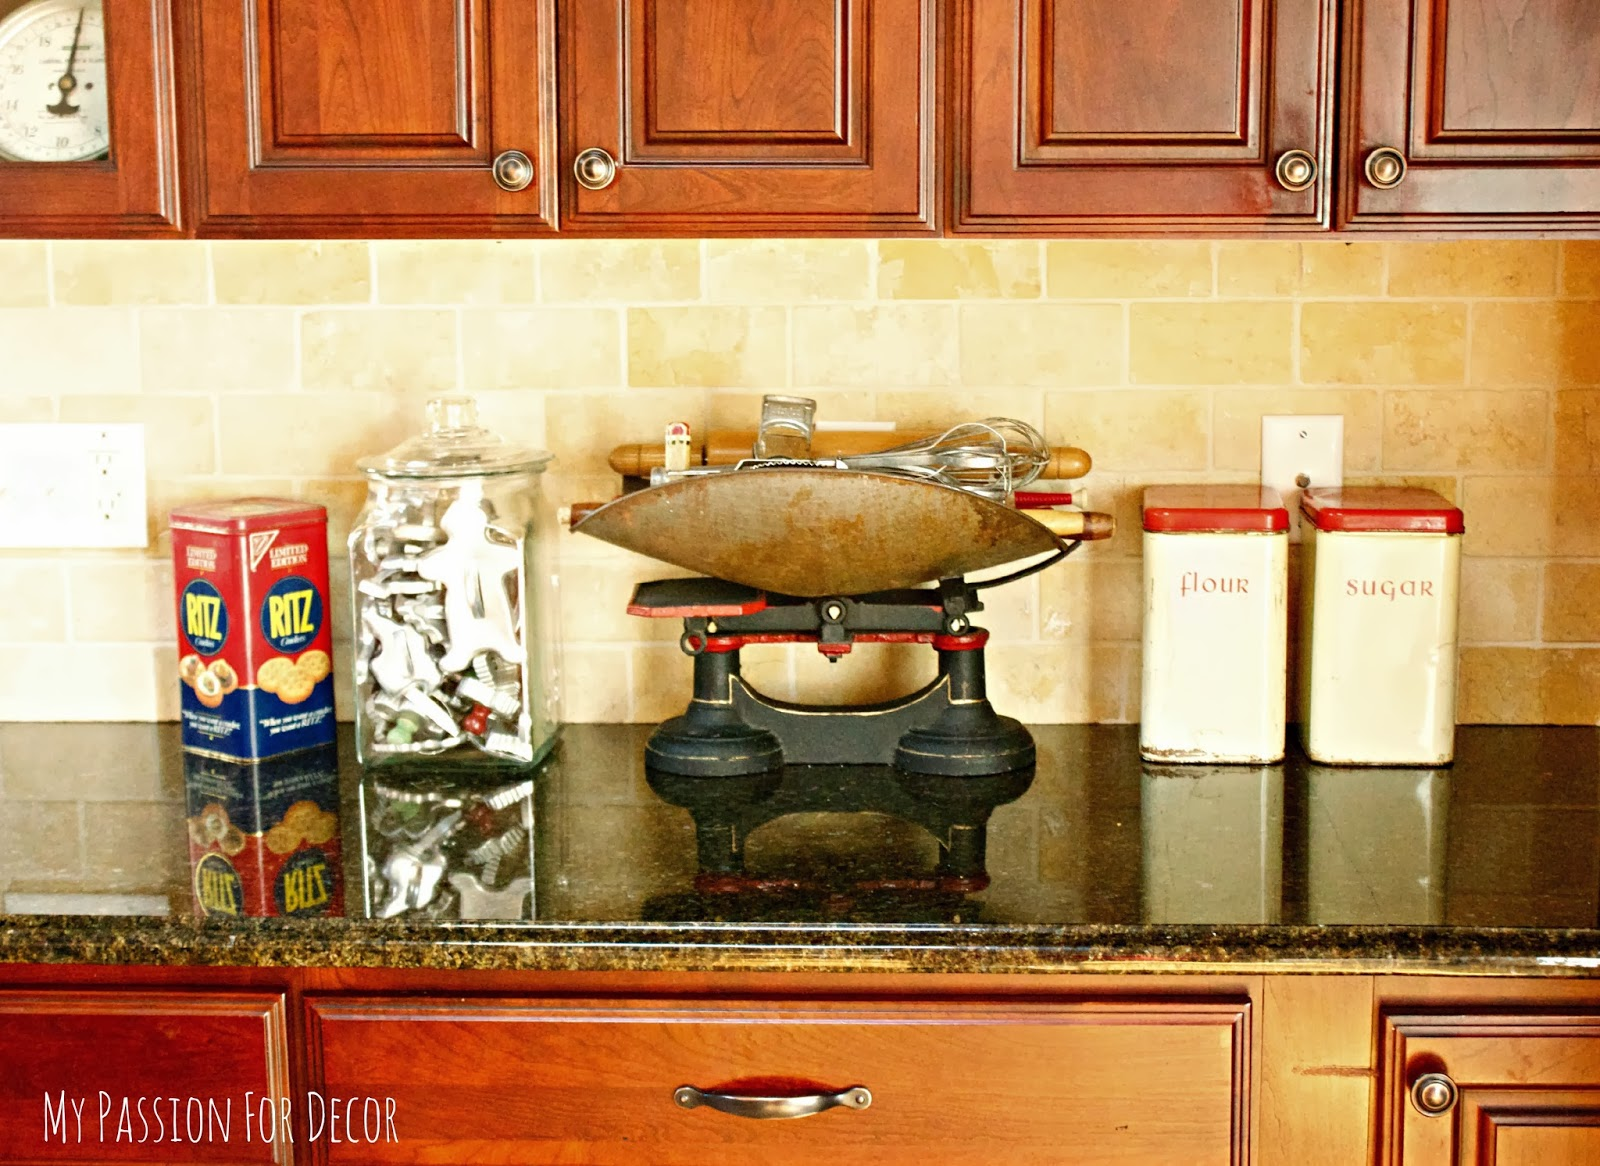 Kitchen Gadget 6 Letters My Passion For Decor The Kitchen Tour